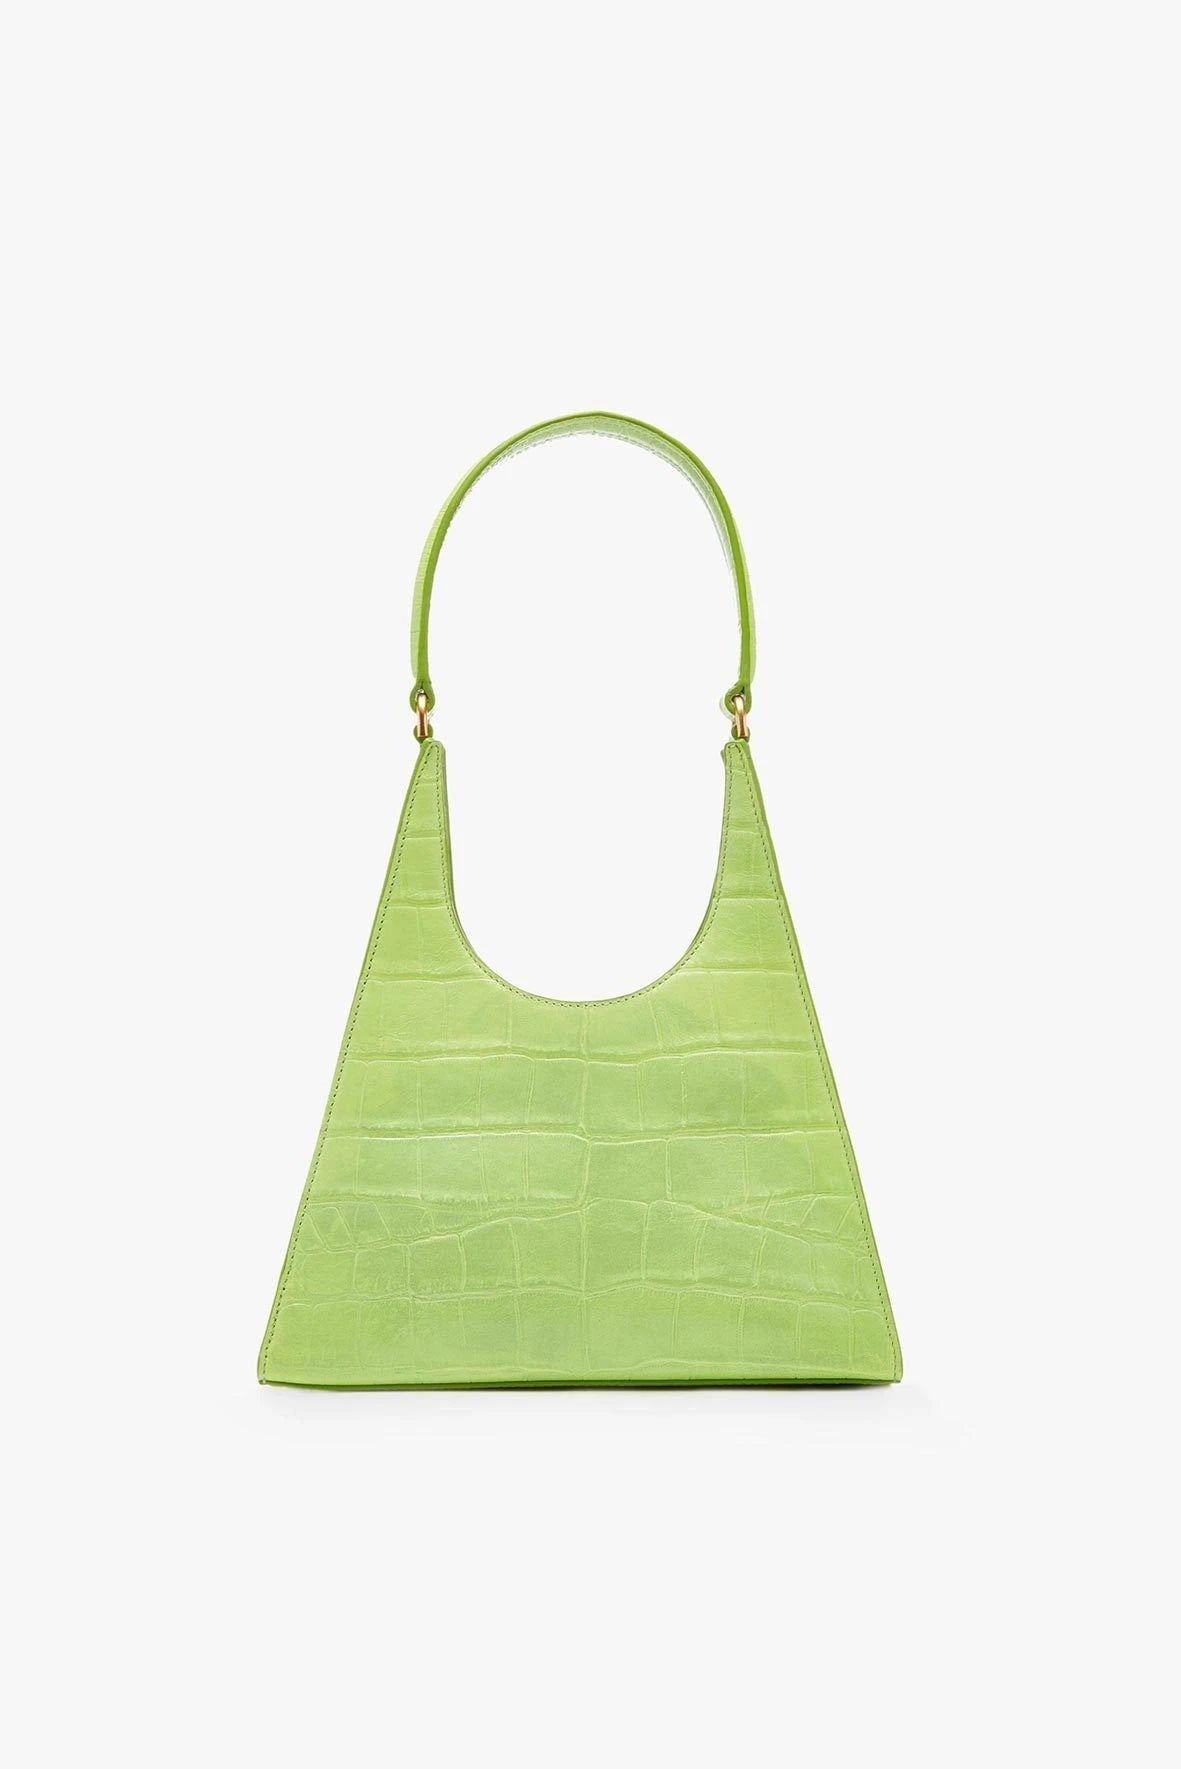 The Rey Bag in Pistachio